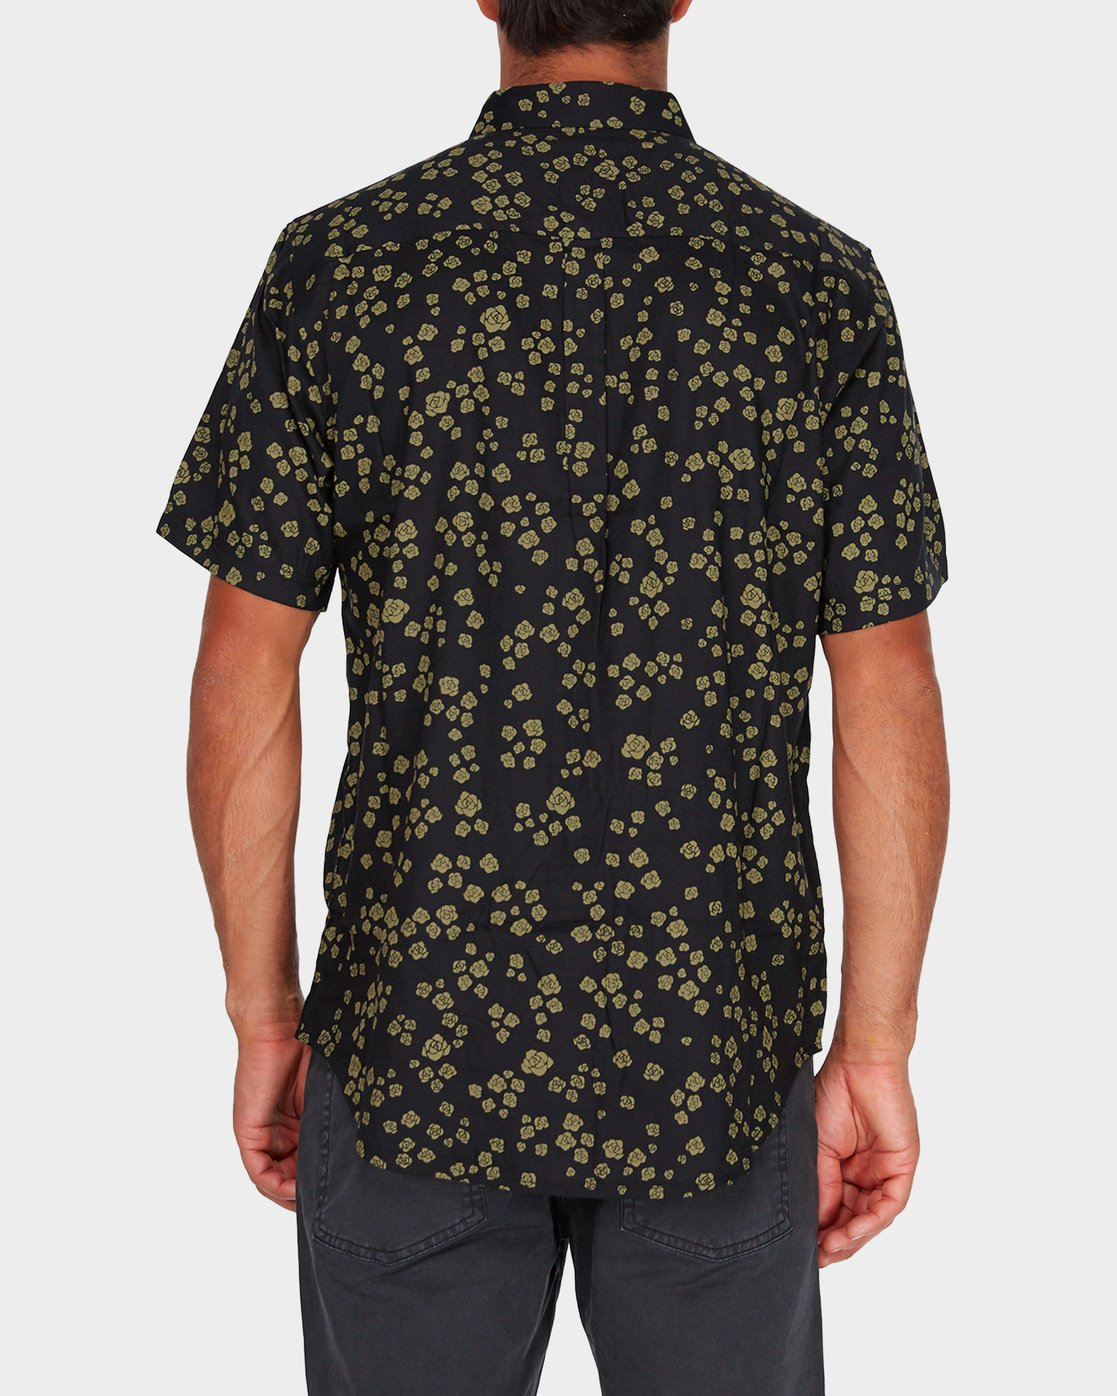 2 RVCA Rosa Short Sleeve Shirt  R182185 RVCA